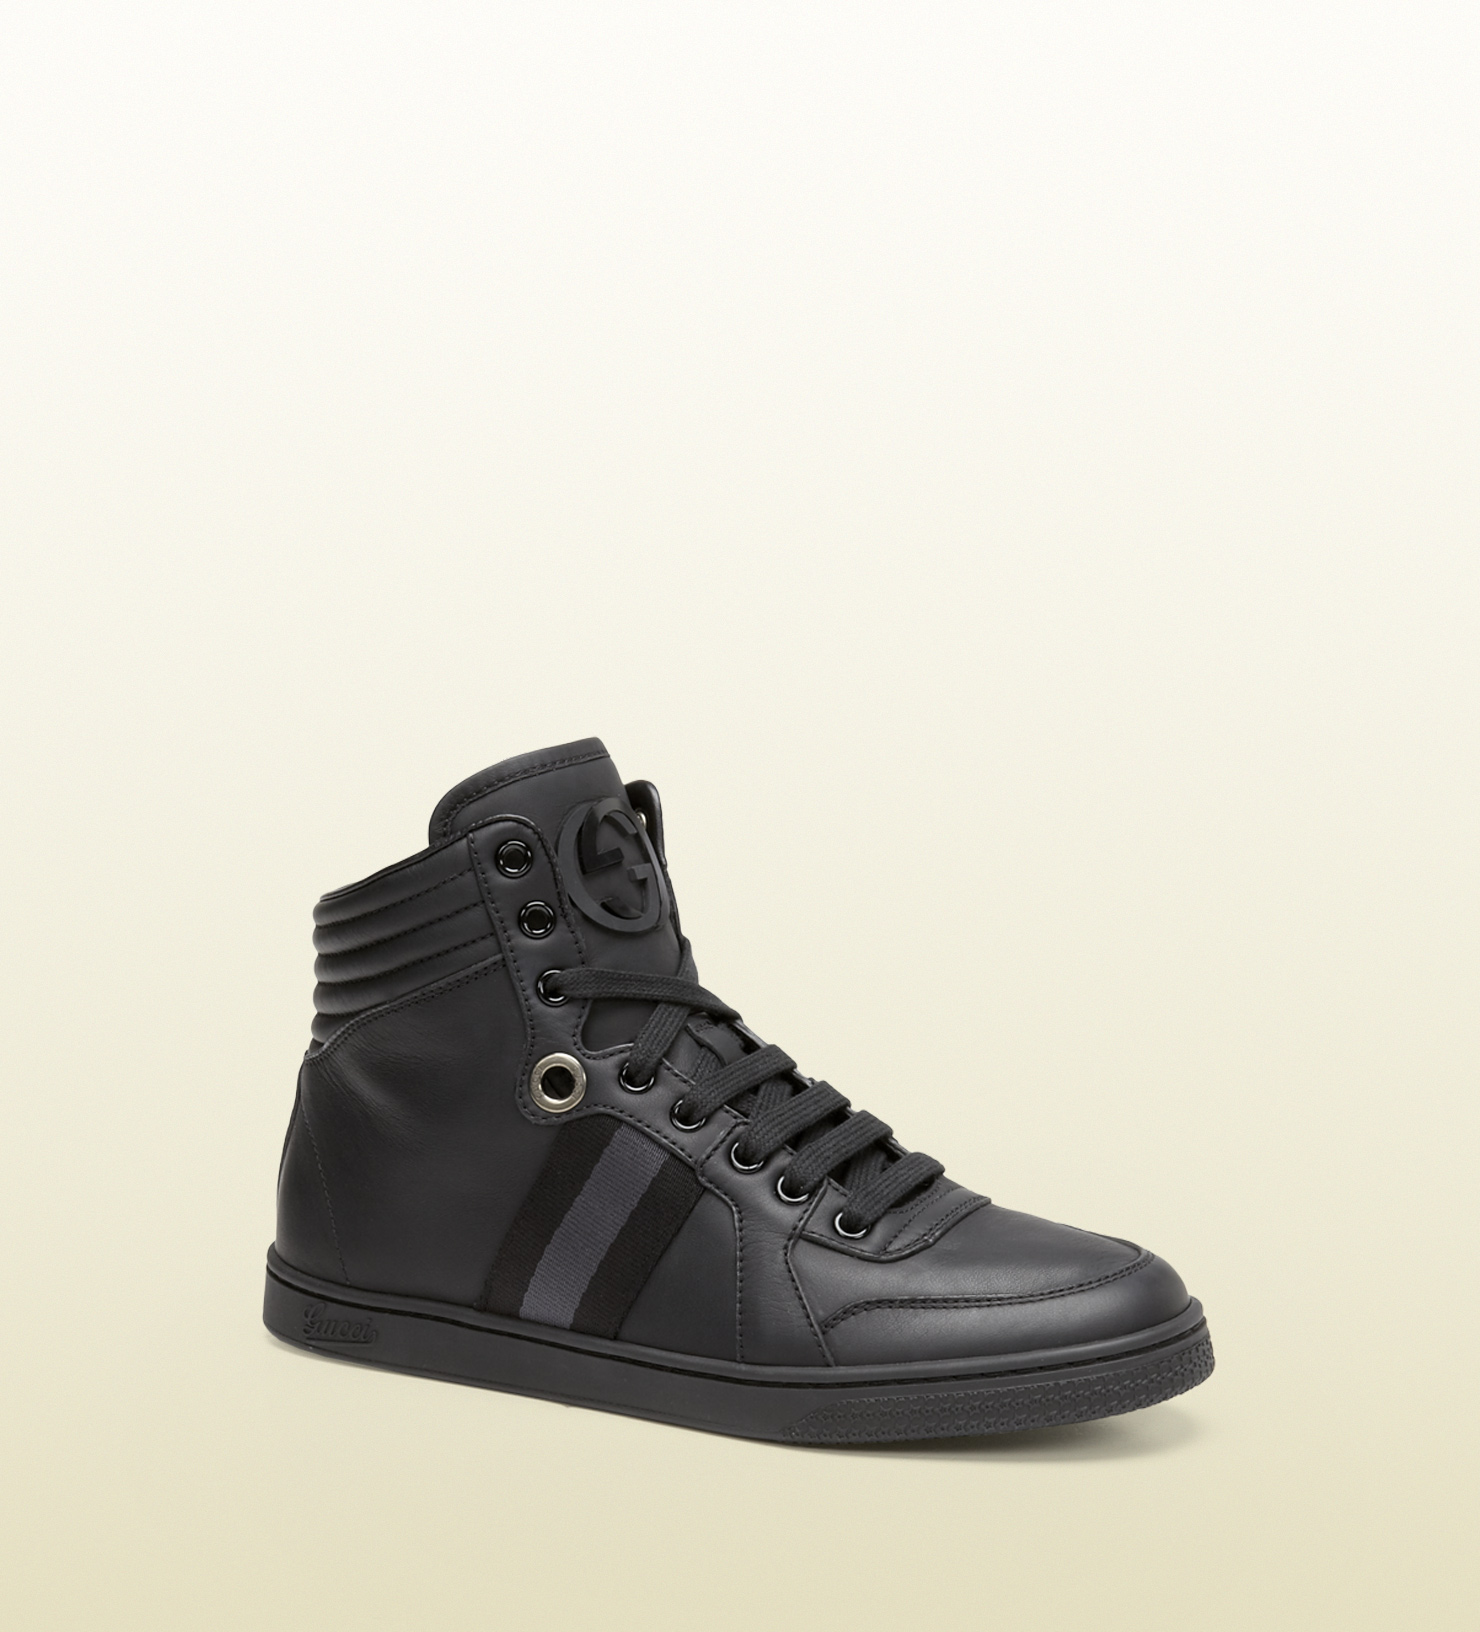 gucci women 39 s black leather high top sneaker from viaggio. Black Bedroom Furniture Sets. Home Design Ideas